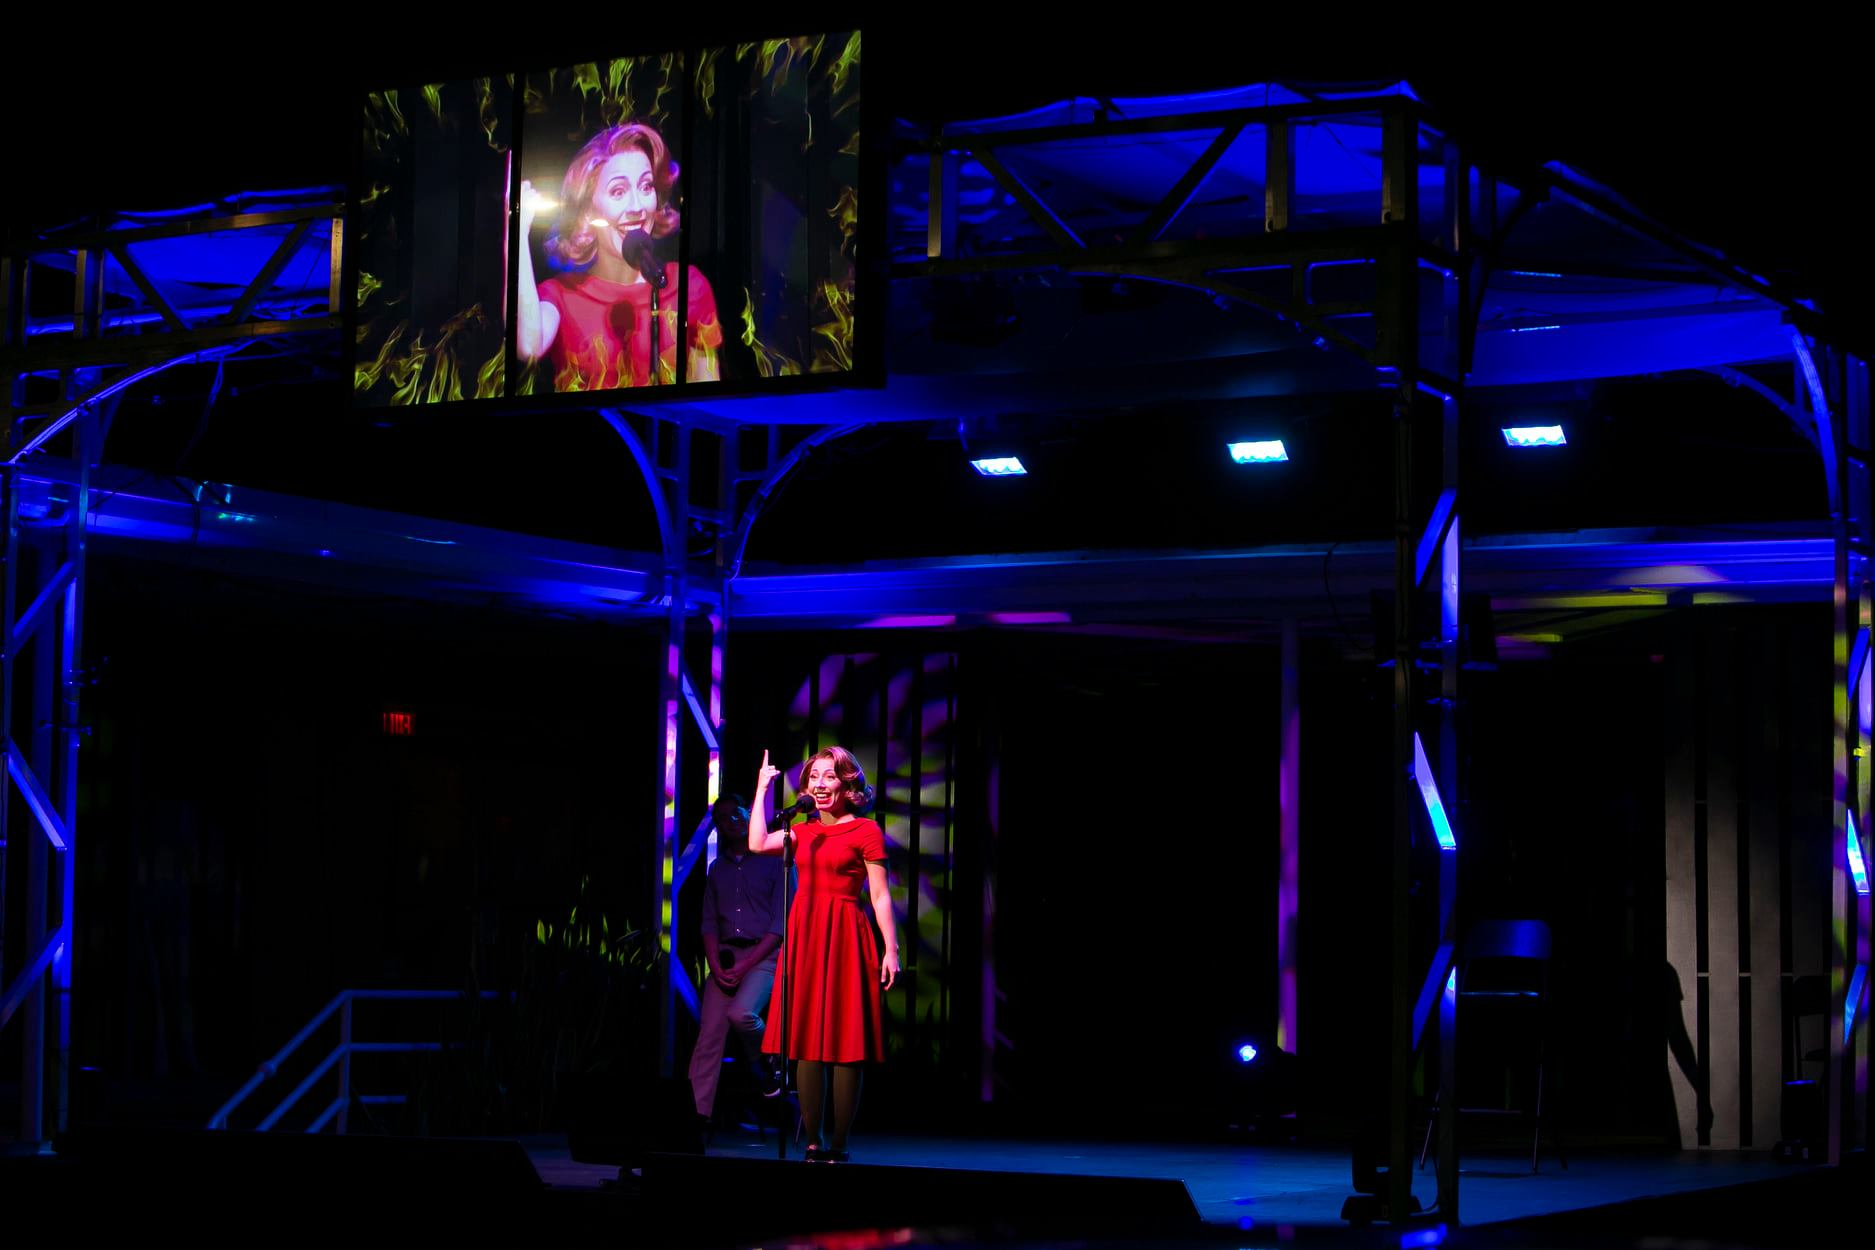 A woman performing in a red dress on a dark stage with a large screen image of her above it.